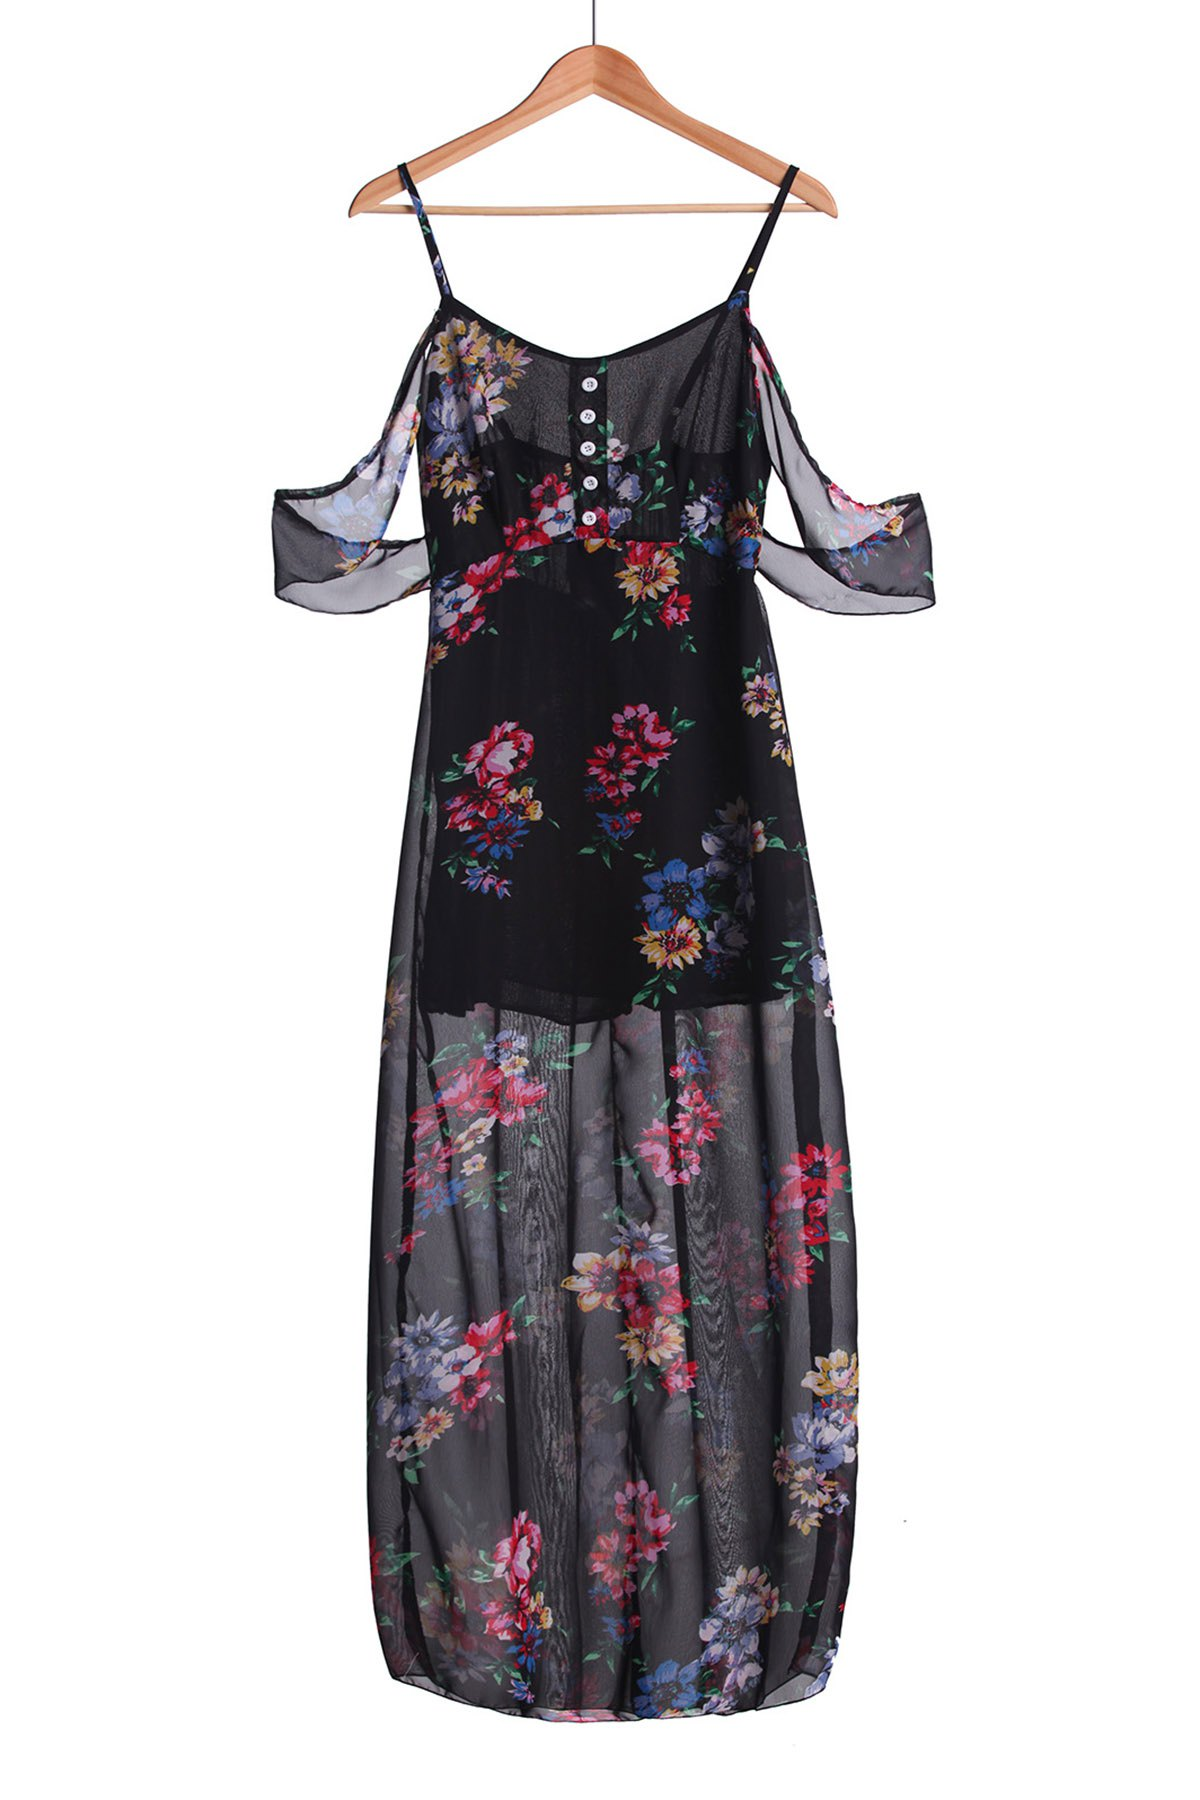 Stylish Spaghetti Strap Floral Off The Shoulder Womens Maxi Dress